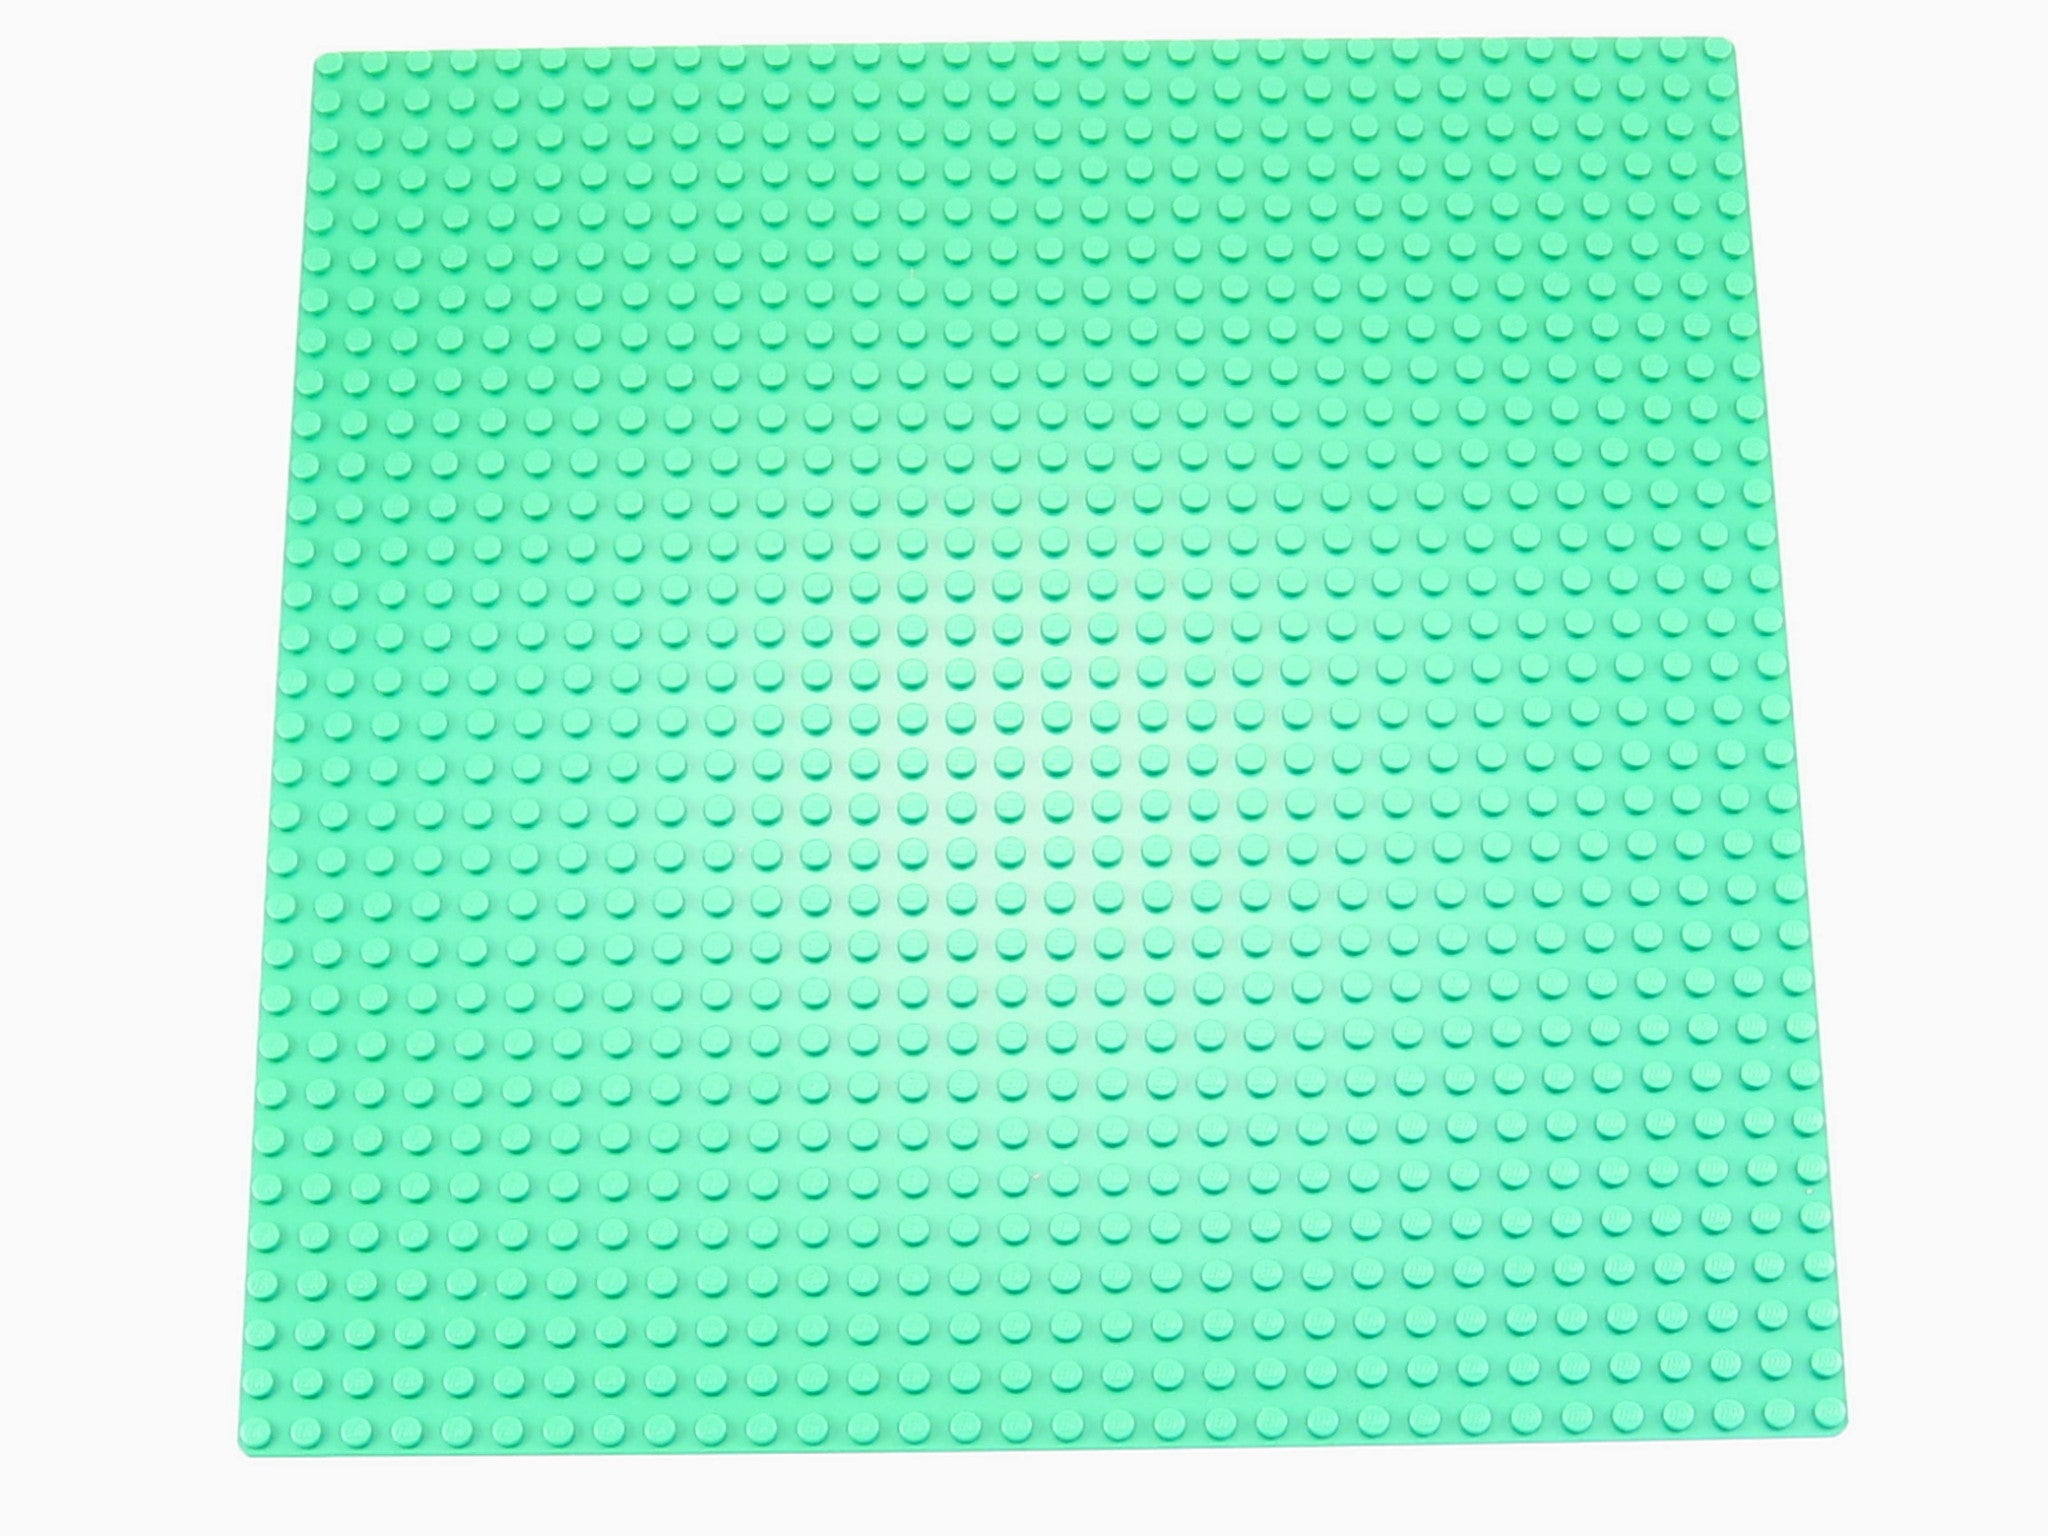 LEGO Green Baseplate 32x32 Part Piece 3811 Base Plate